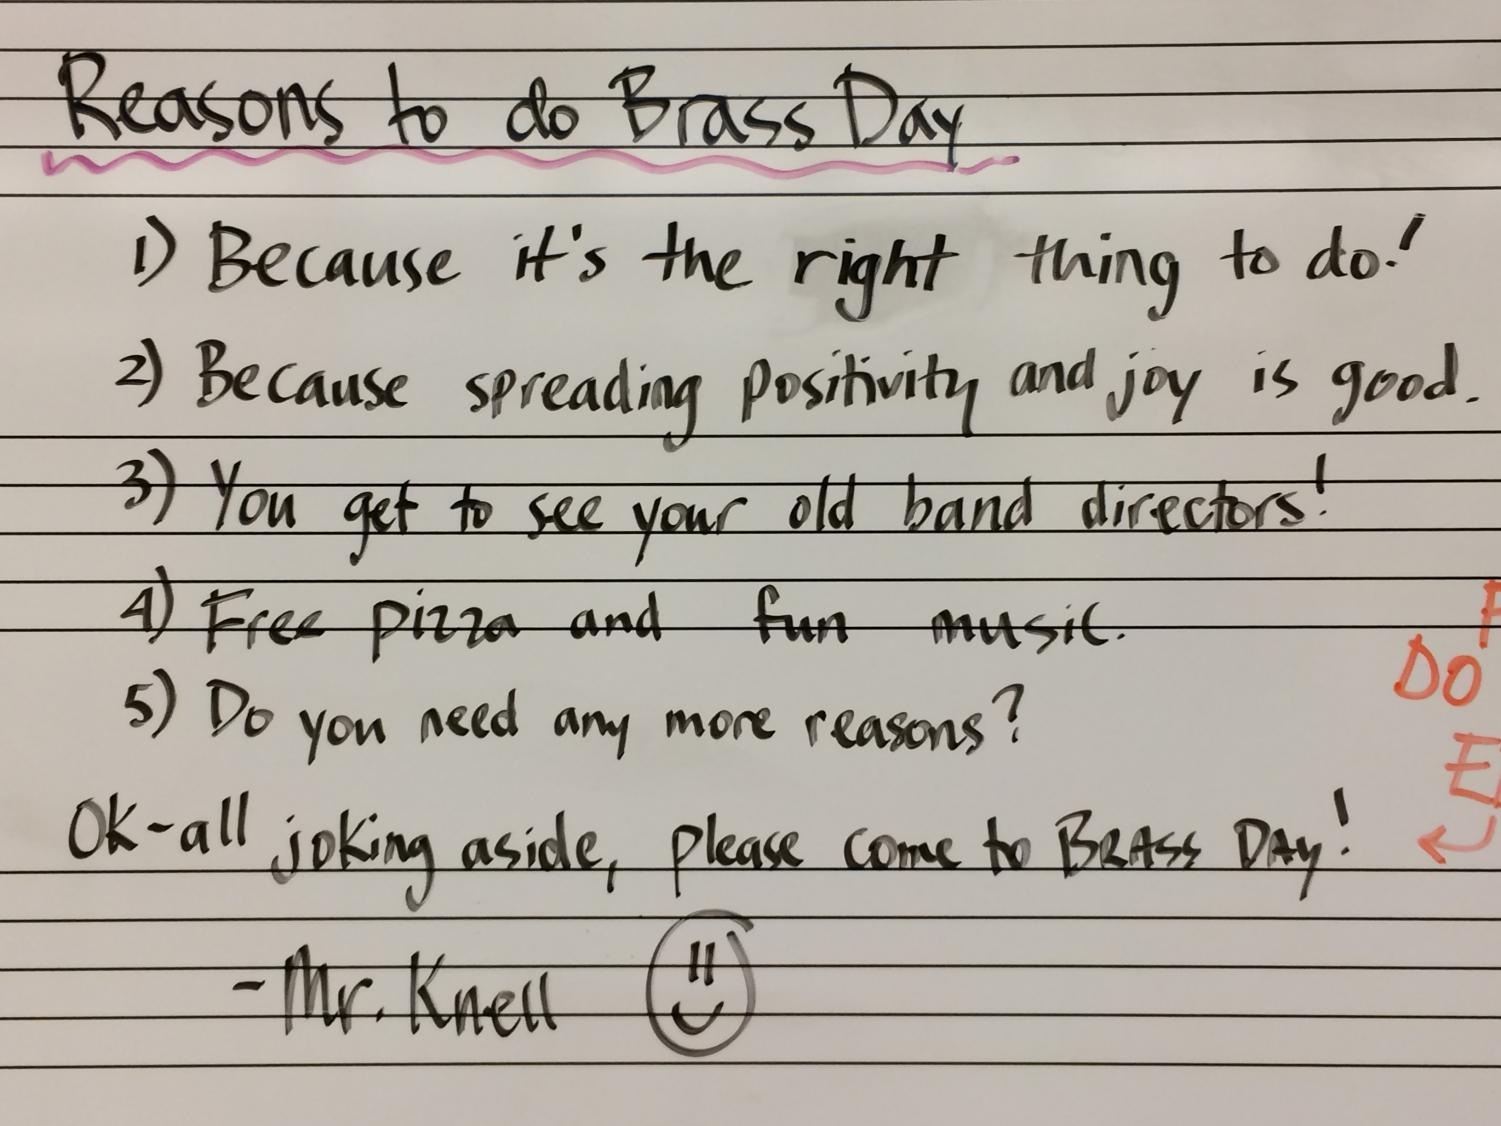 REASONS TO DO BRASS DAY, written by Mr. Knell, to convince high school brass students to do Brass Day.